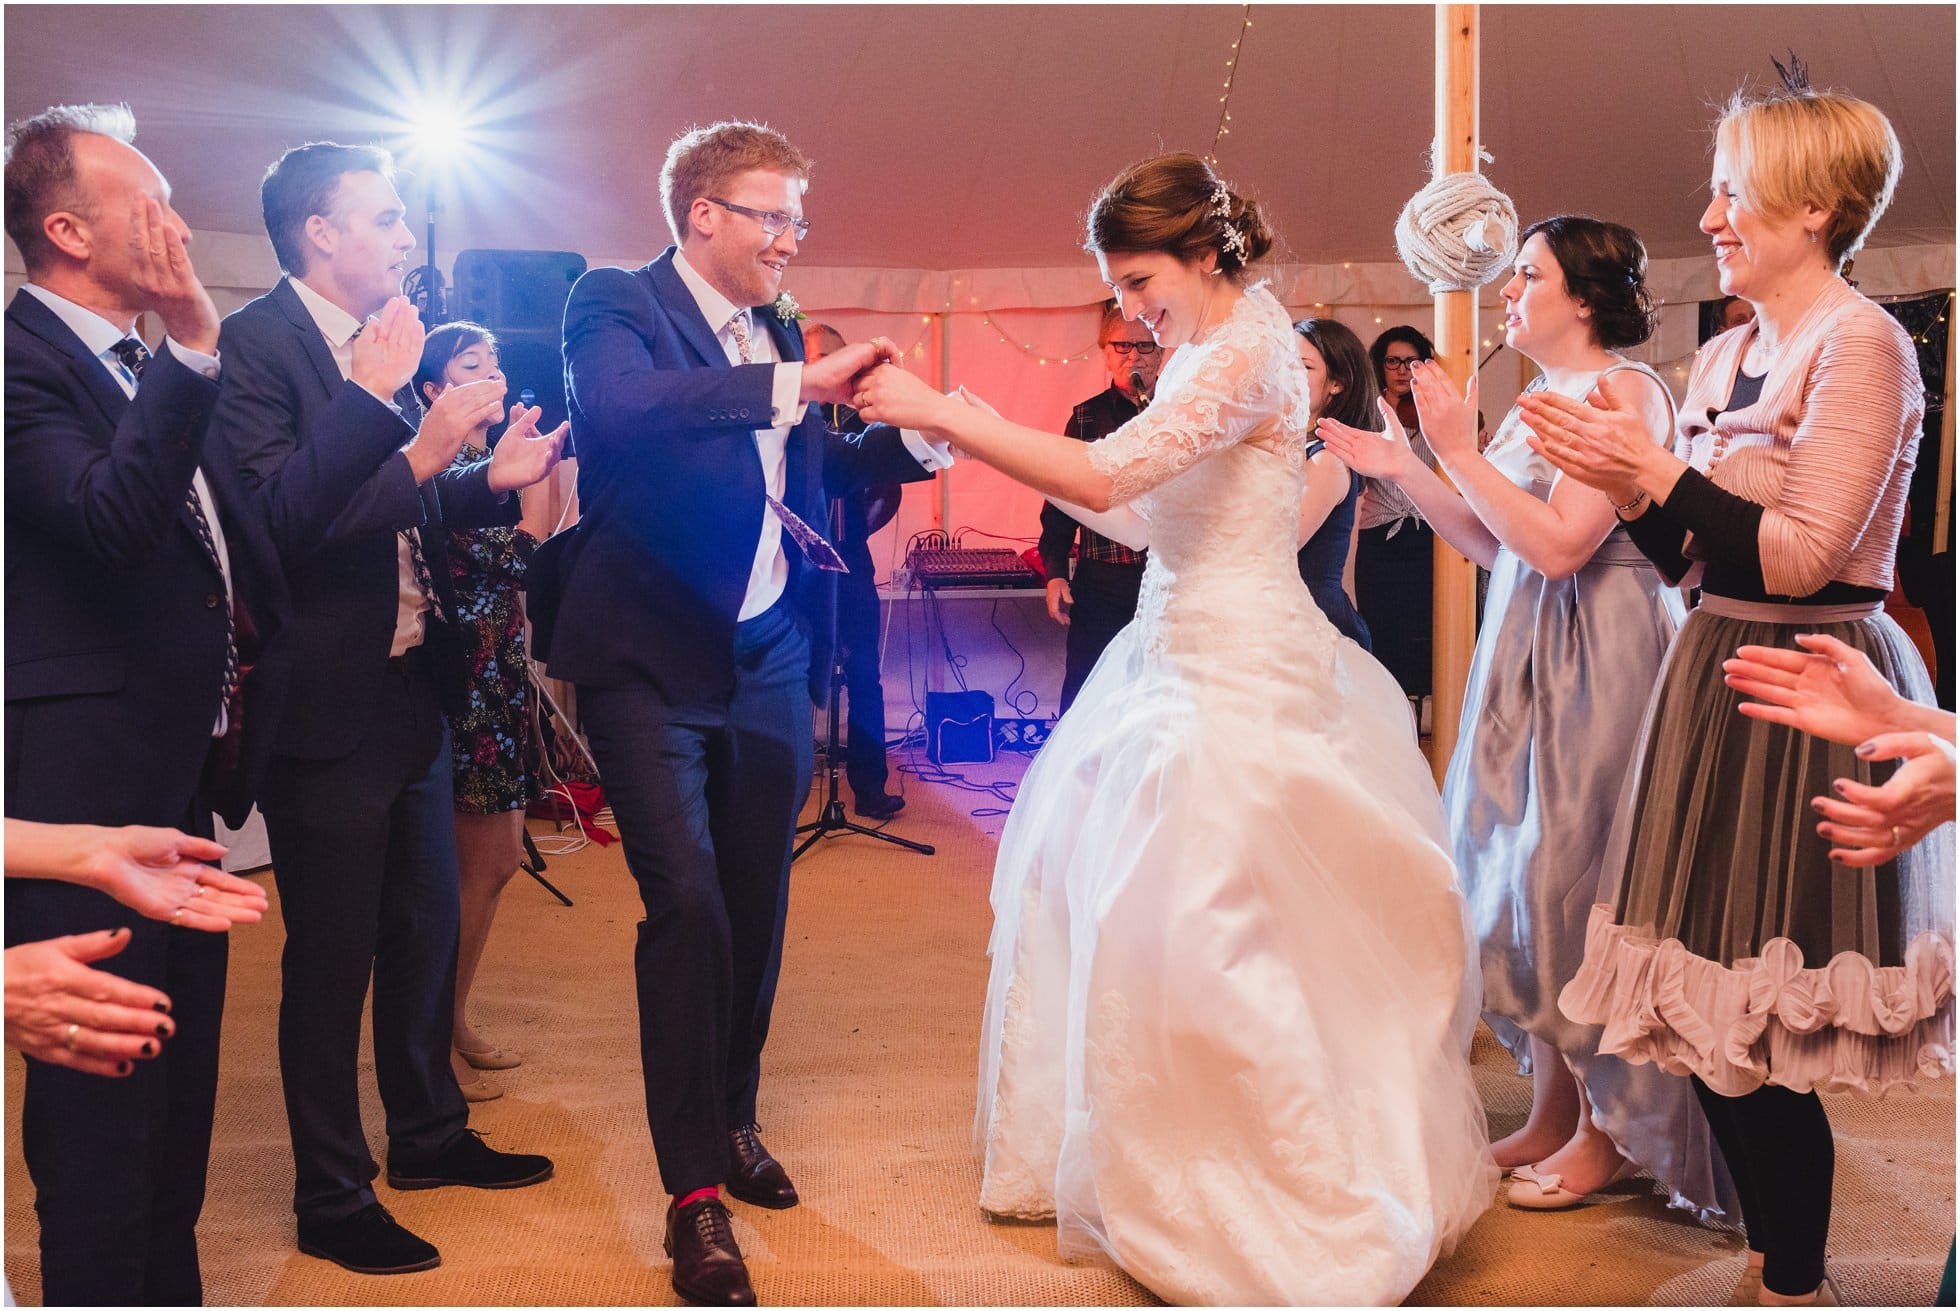 Bride and groom at their ceilidh